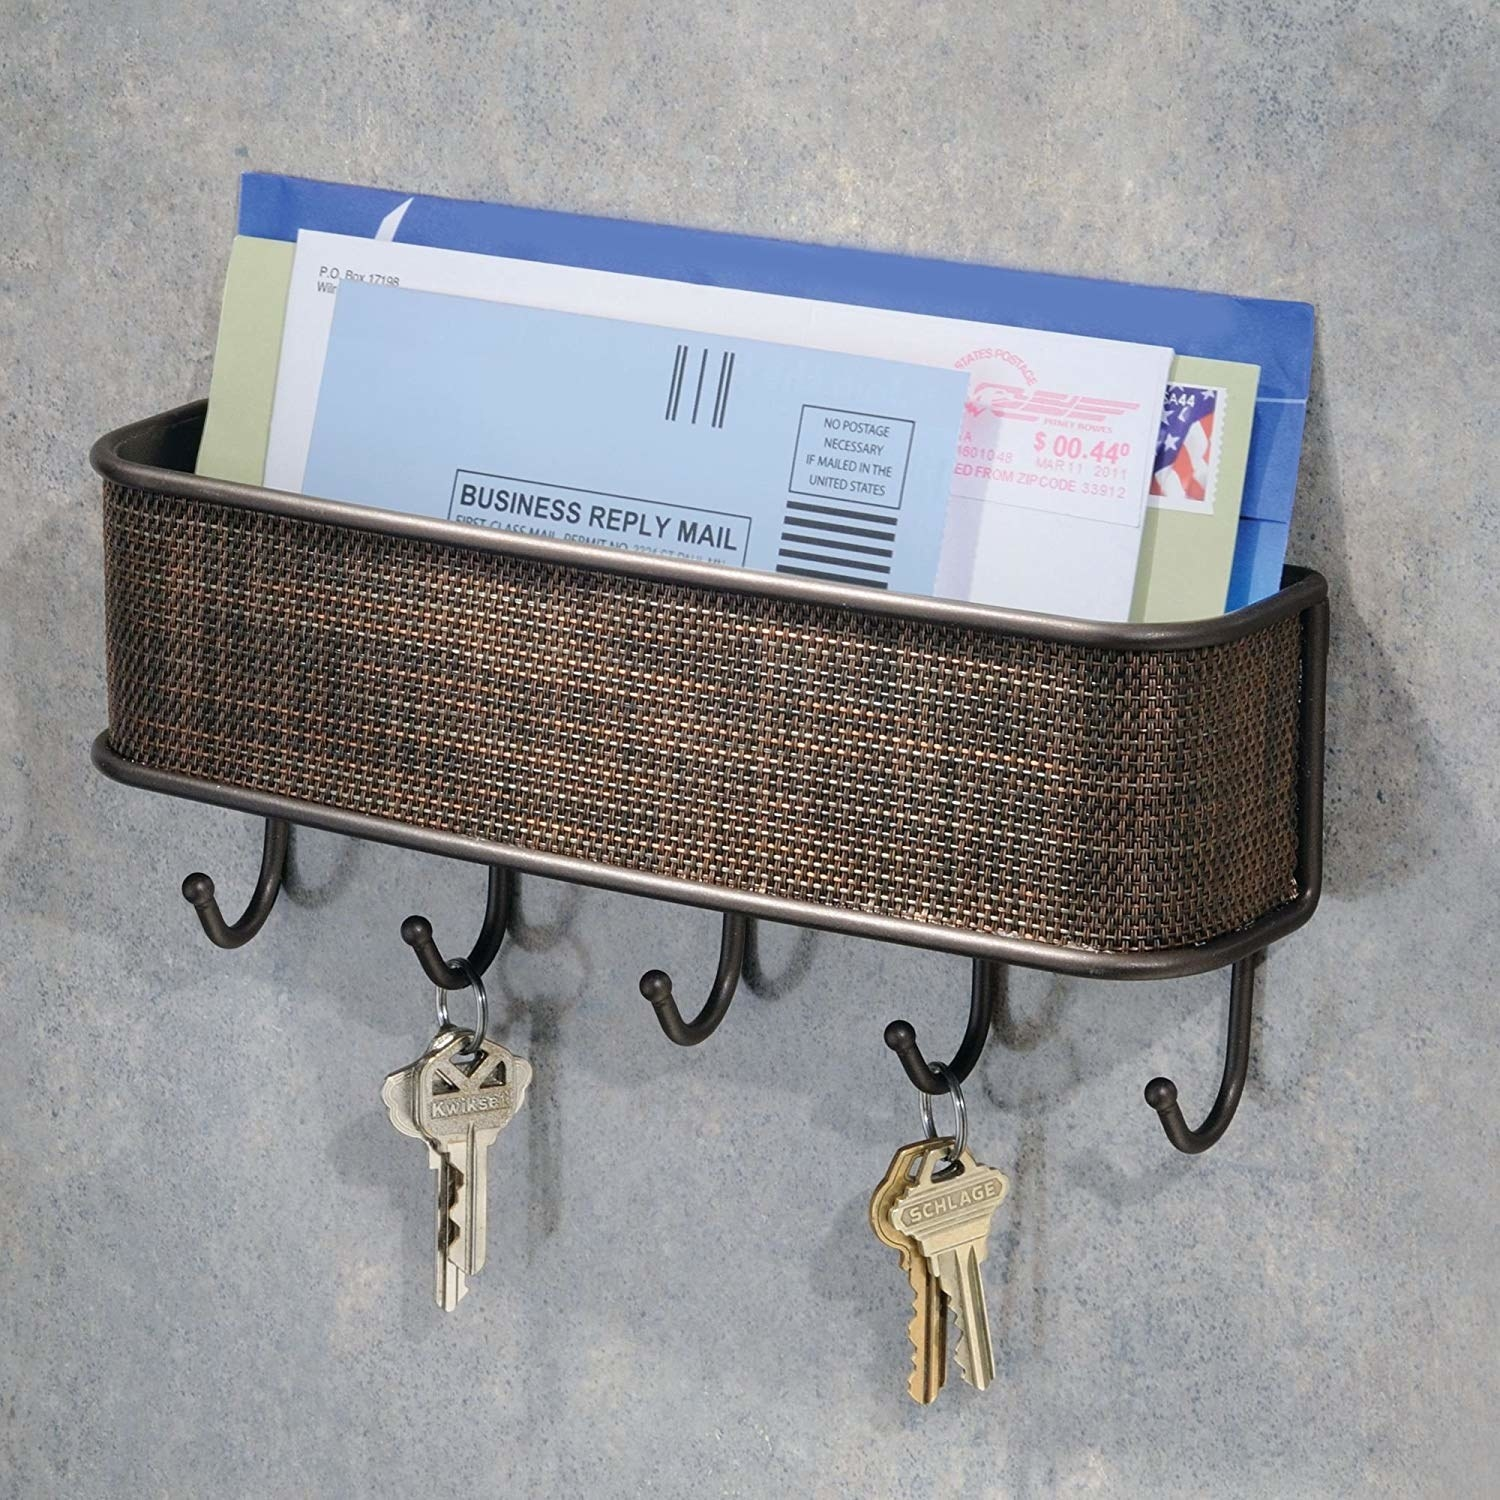 It has a basket for mail to sit in on top; the front is covered with a brown basketweave pattern; and there are five small hooks for keys at the bottom